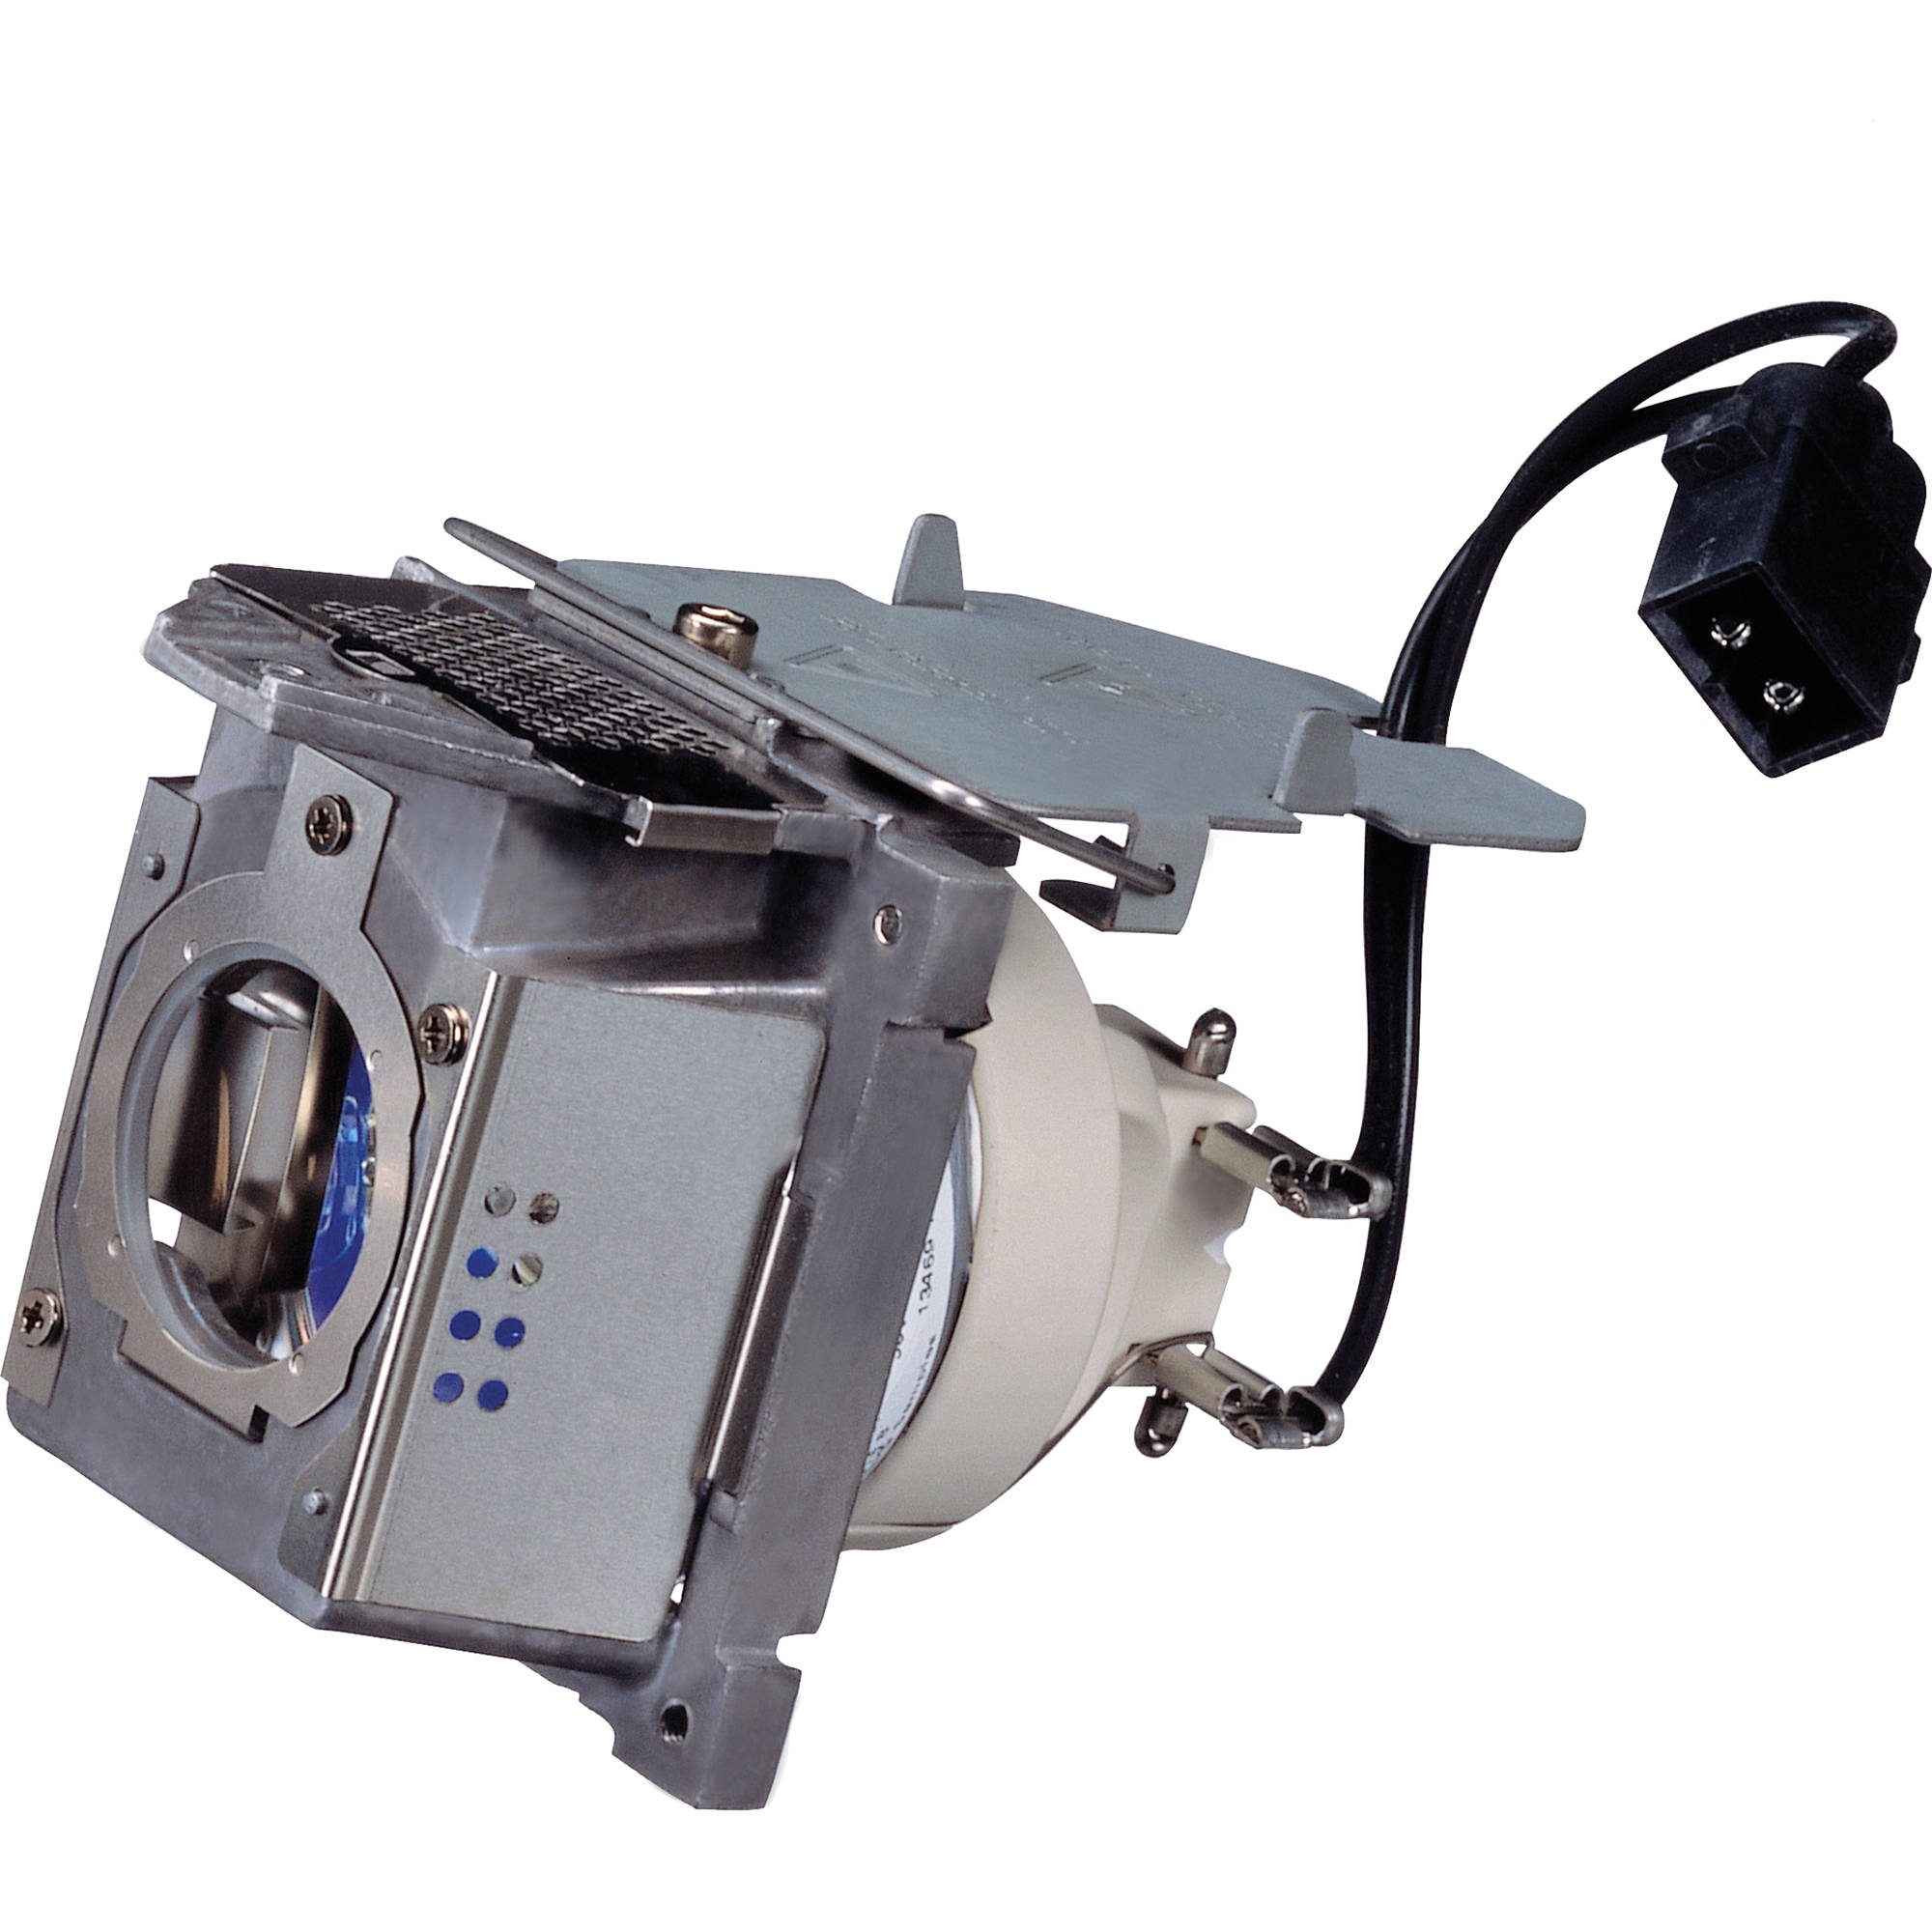 <b>Hybrid Brand</b> BENQ SH963 (Lamp 2) replacement lamp - 180 Day Warranty